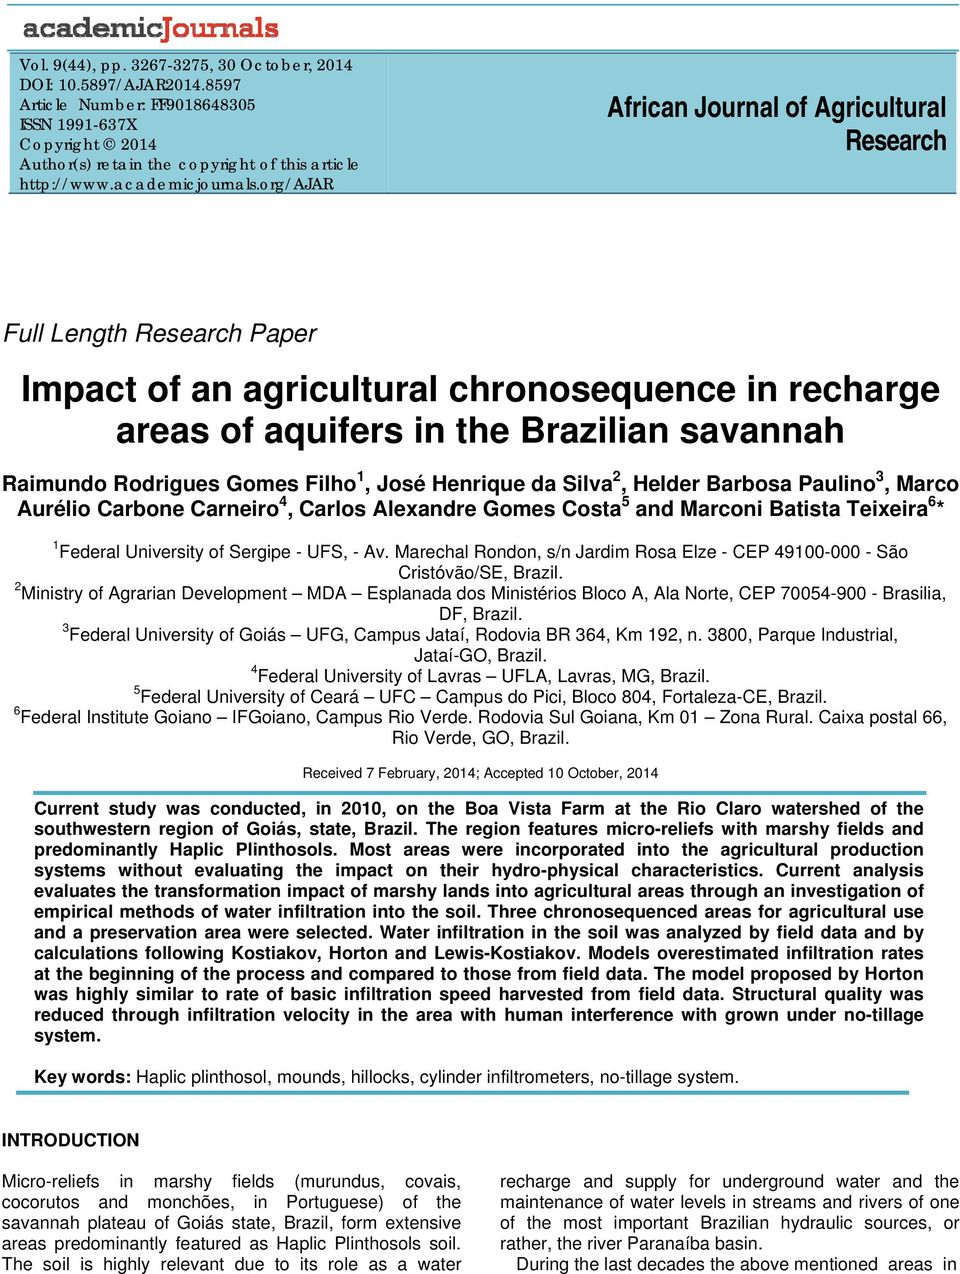 org/ajar Africa Joural of Agricultural Research Full Legth Research Paper Impact of a agricultural chroosequece i recharge areas of aquifers i the Brazilia savaah Raimudo Rodrigues Gomes Filho 1,